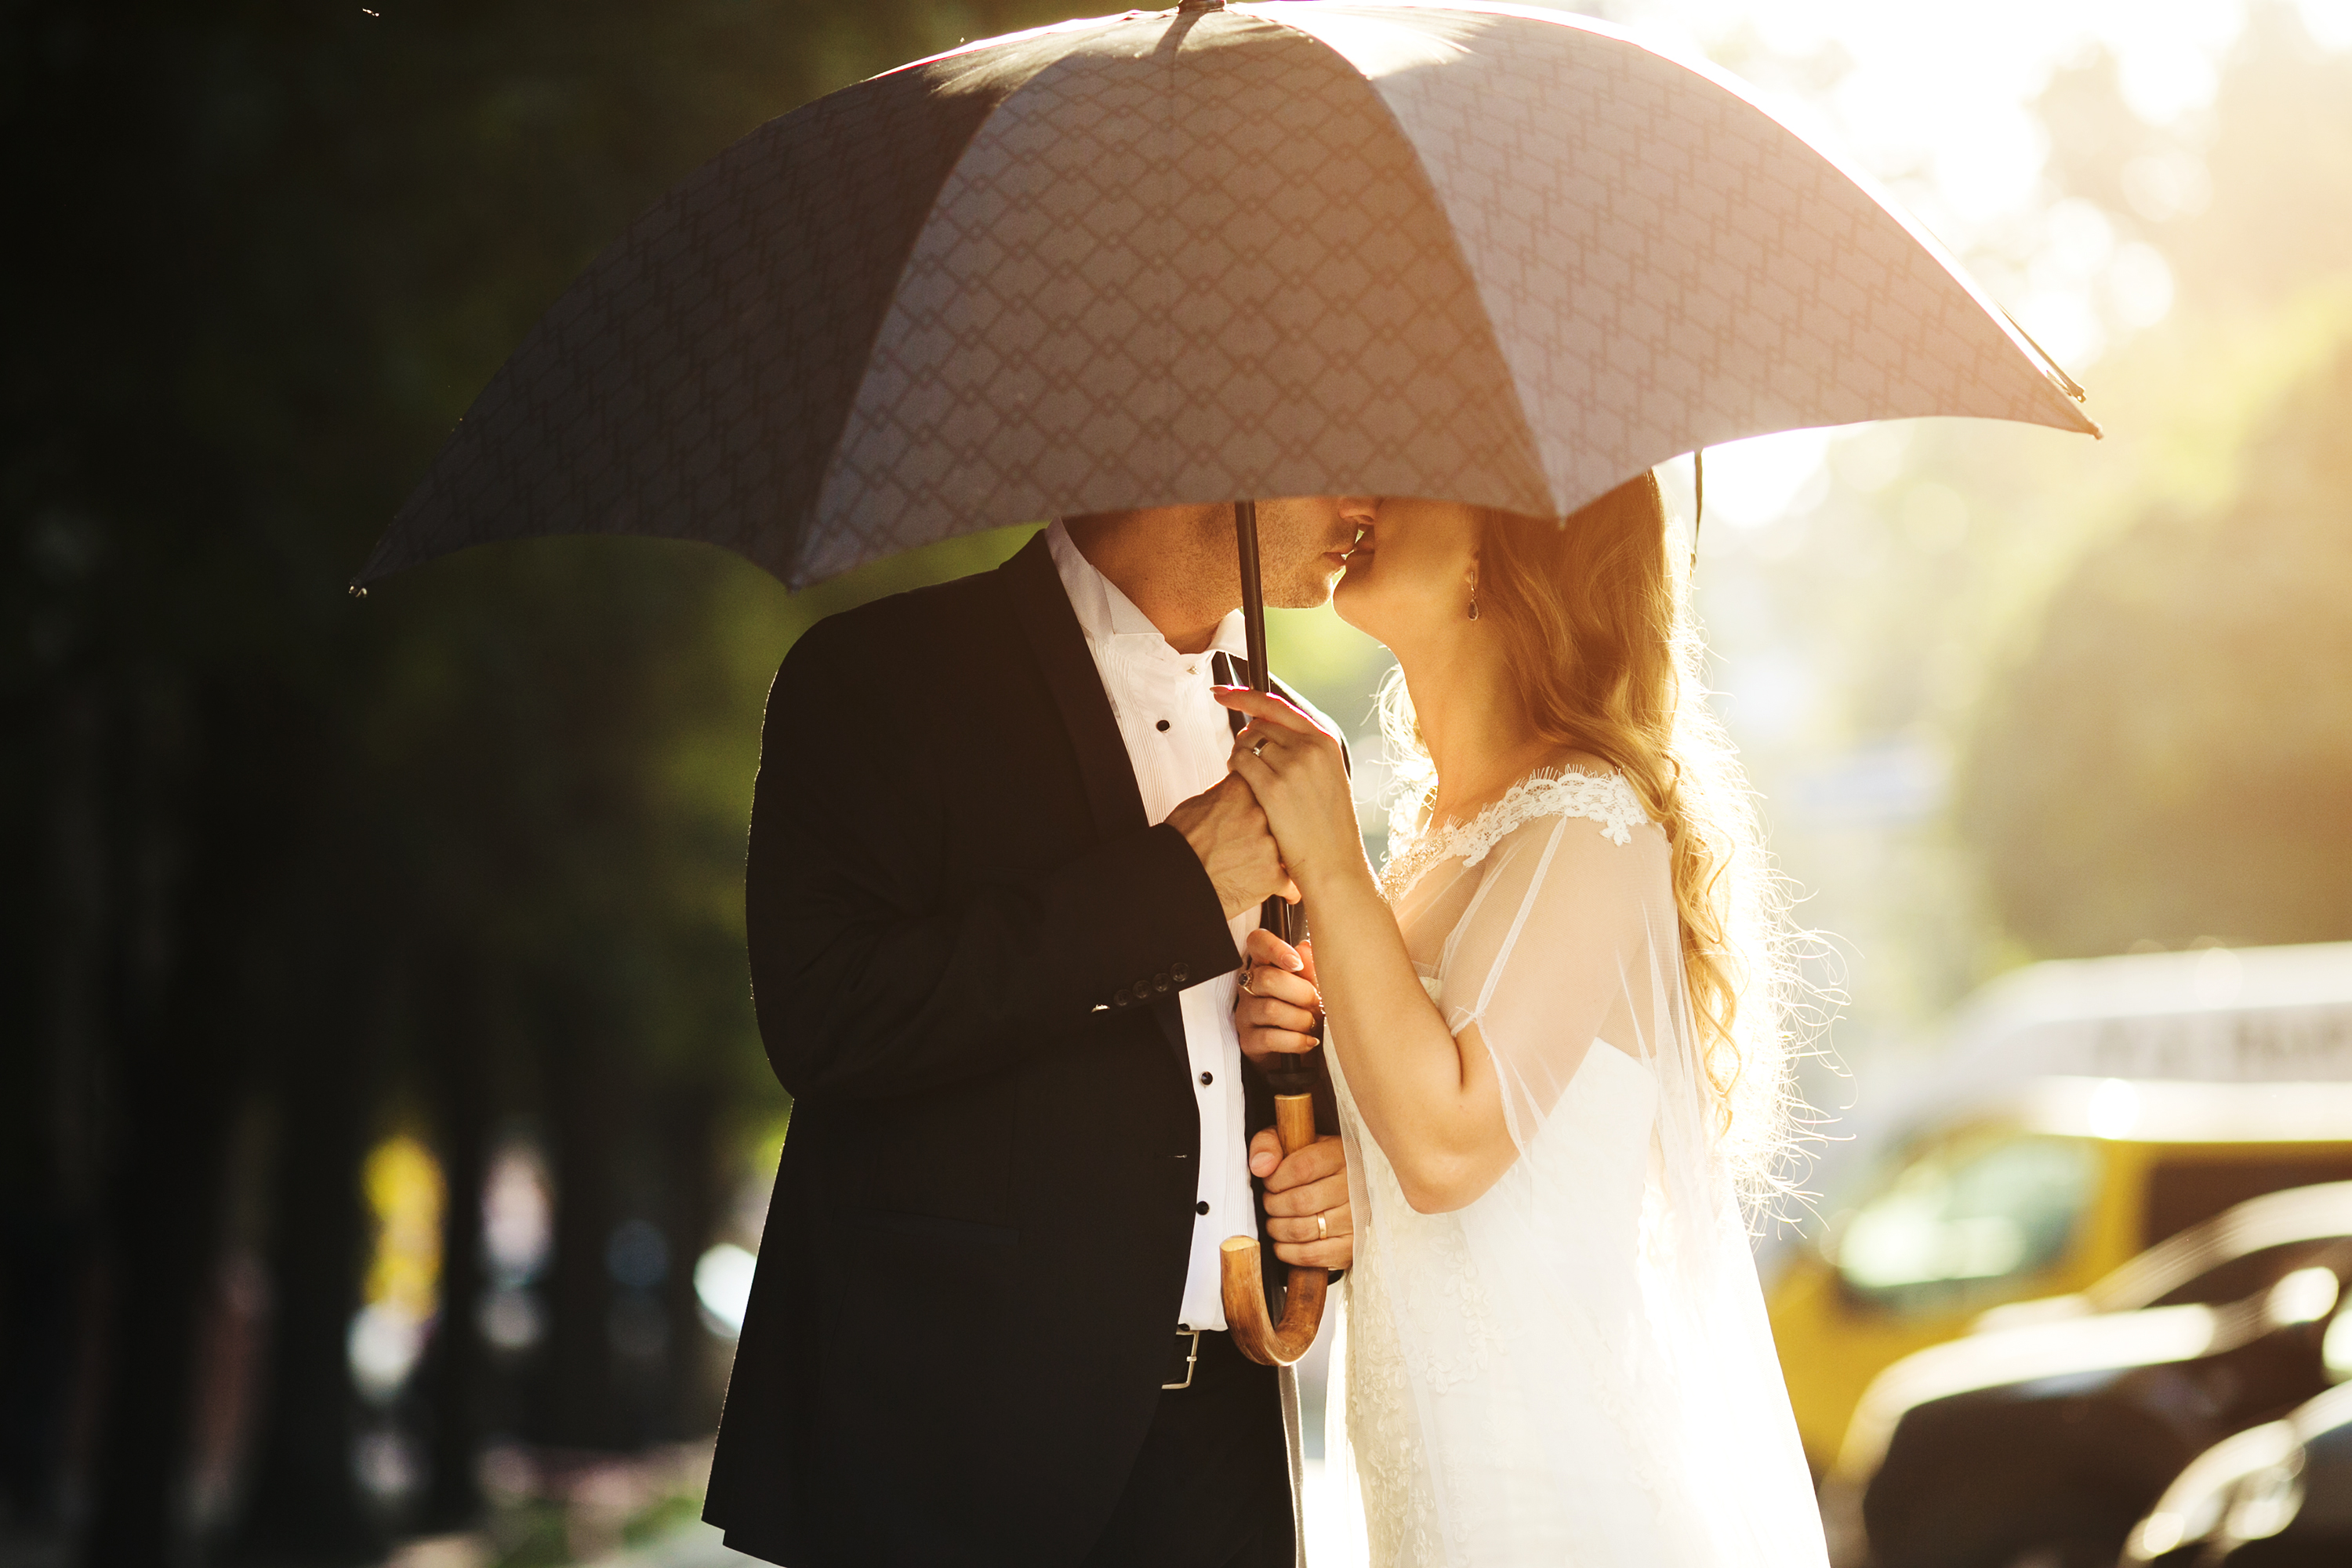 Wedding couple kissing on umbrella